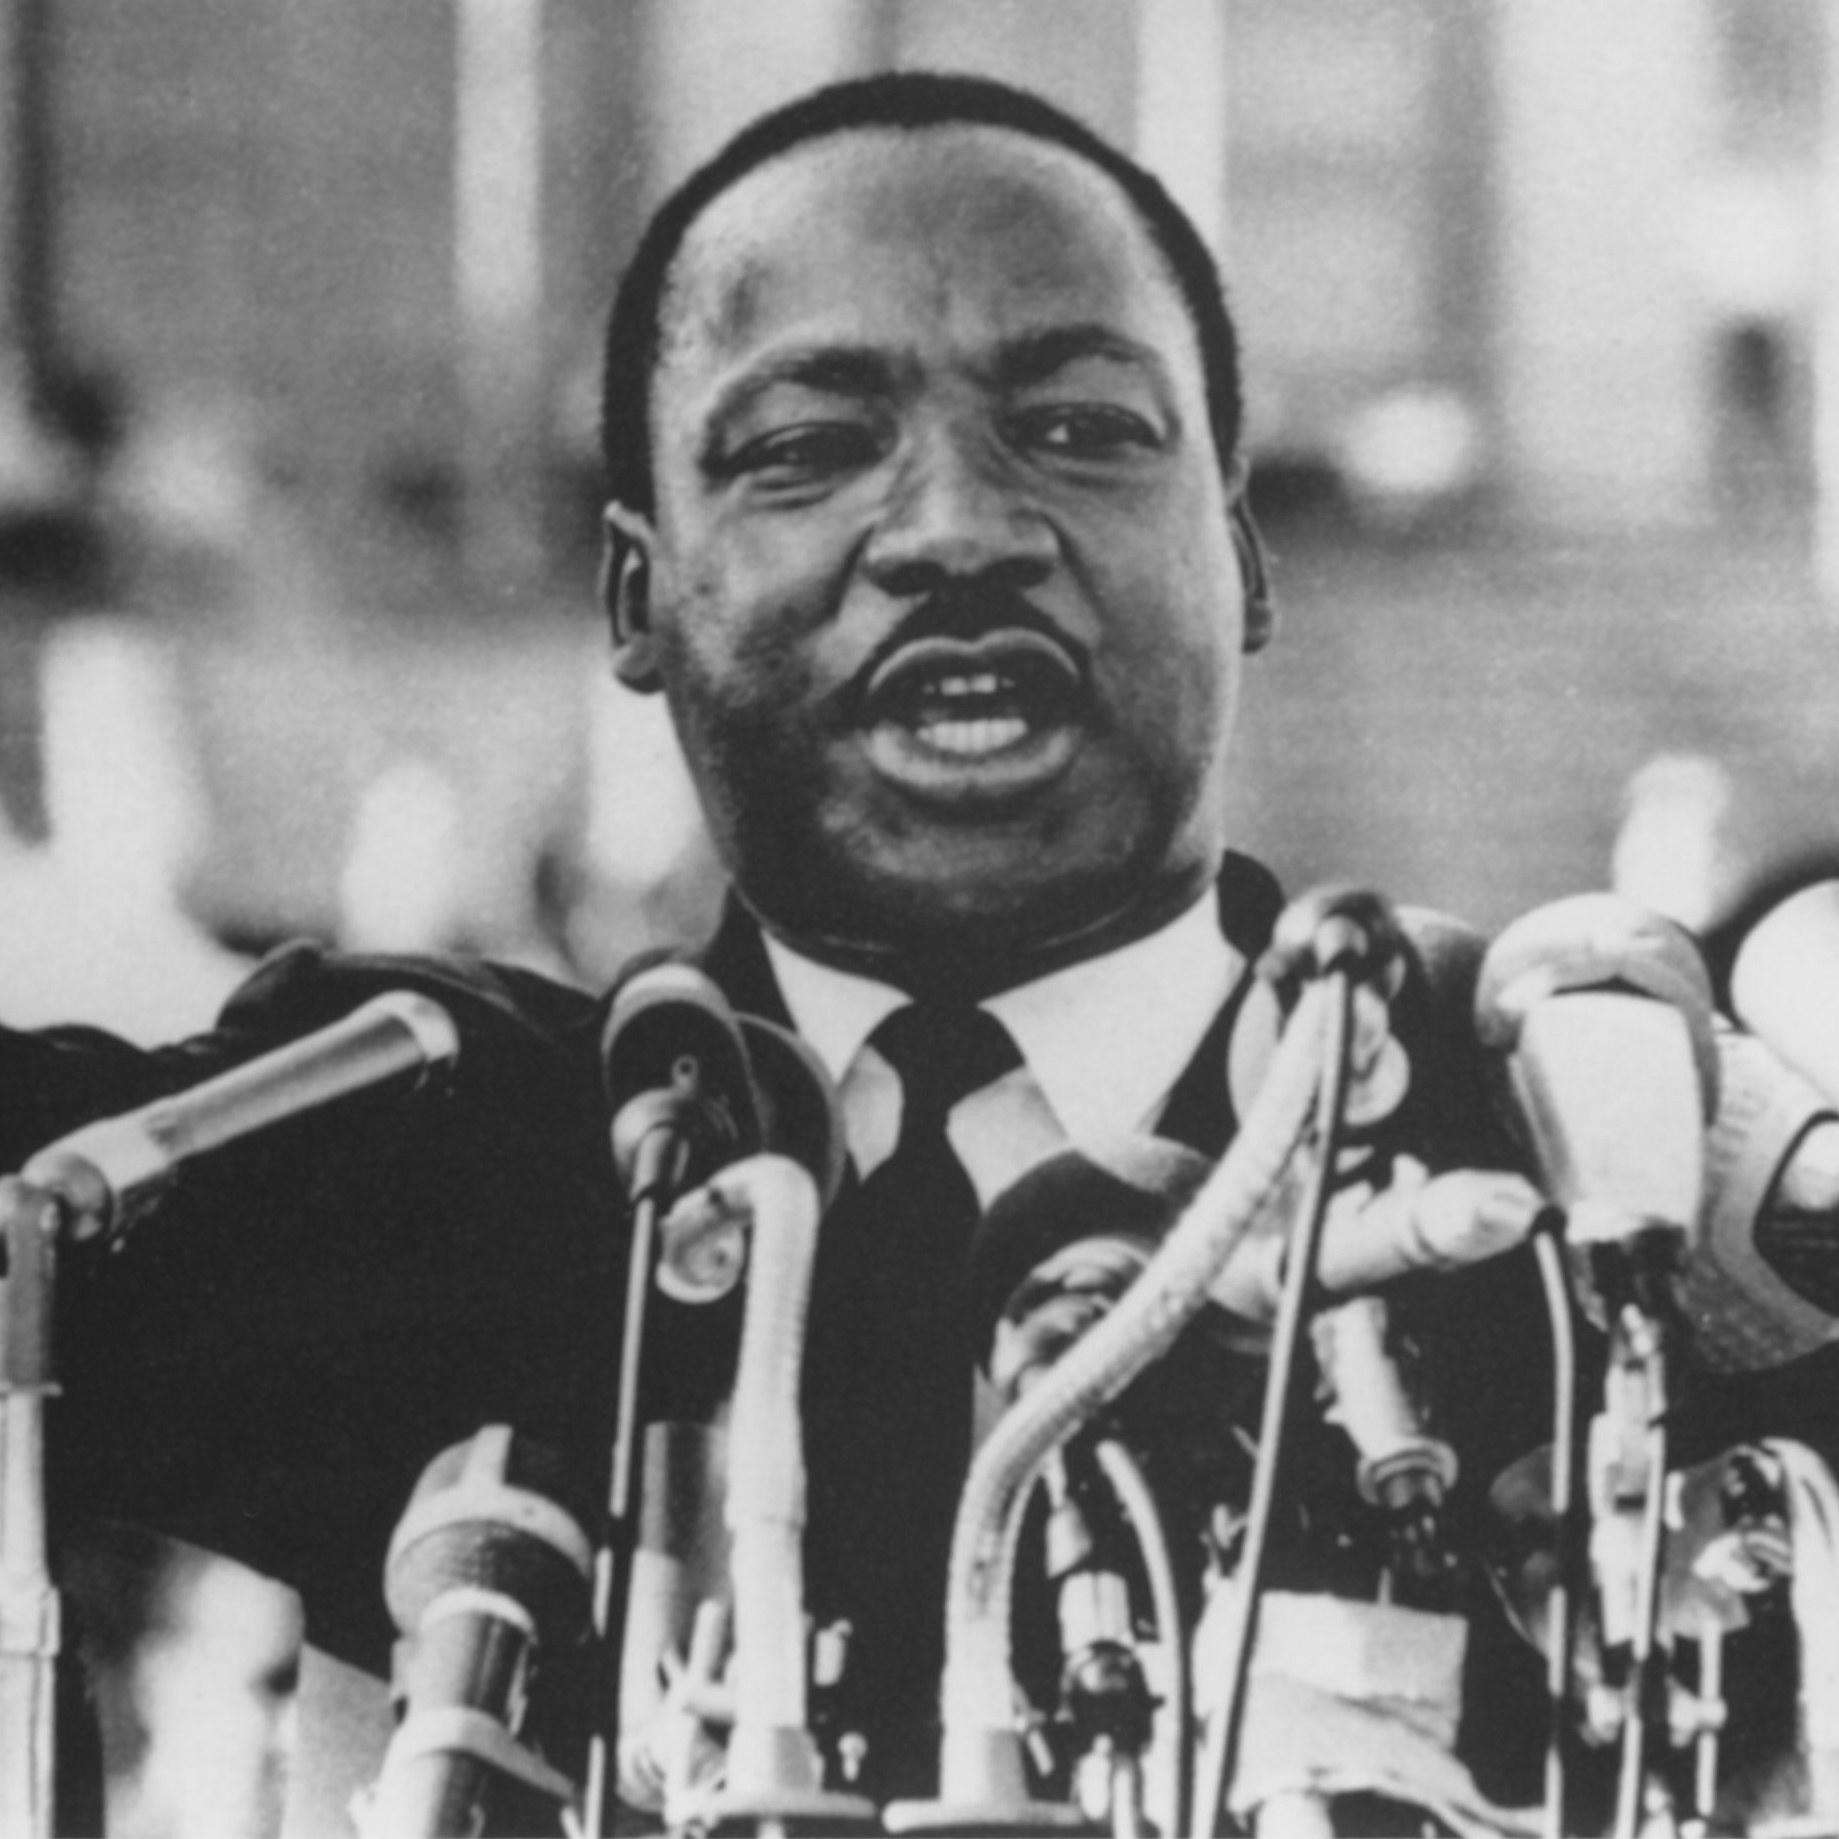 martin luther king civil rights leader On july 2, 1964, the work of king and the civil rights movement was finally rewarded, when president lyndon johnson signed the civil rights act of 1964, which outlawed segregation in public places and forbid racial discrimination by private employers.